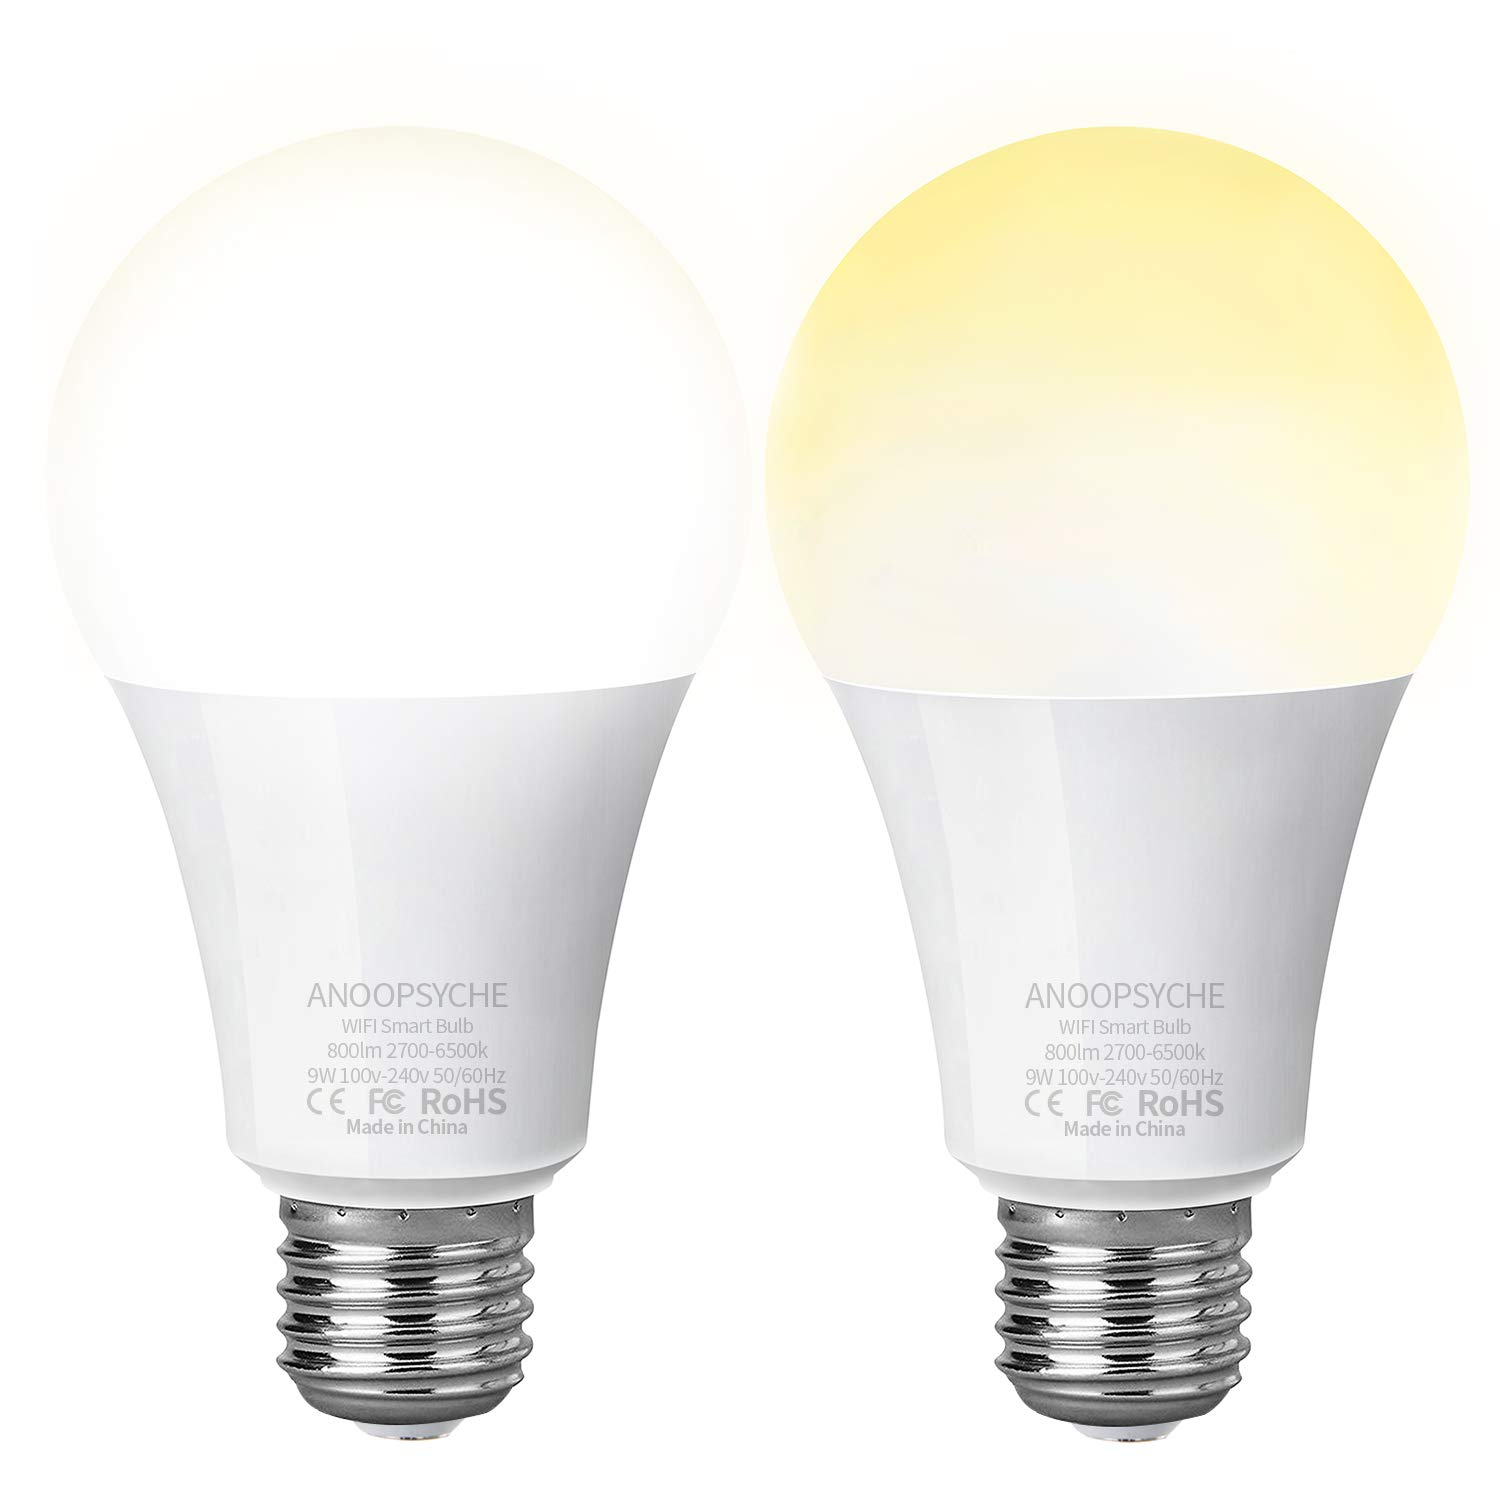 smart led light bulb wi fi bulb anoopsyche dimmable 2700k 6500k 60w equivalent 800lm daylight. Black Bedroom Furniture Sets. Home Design Ideas